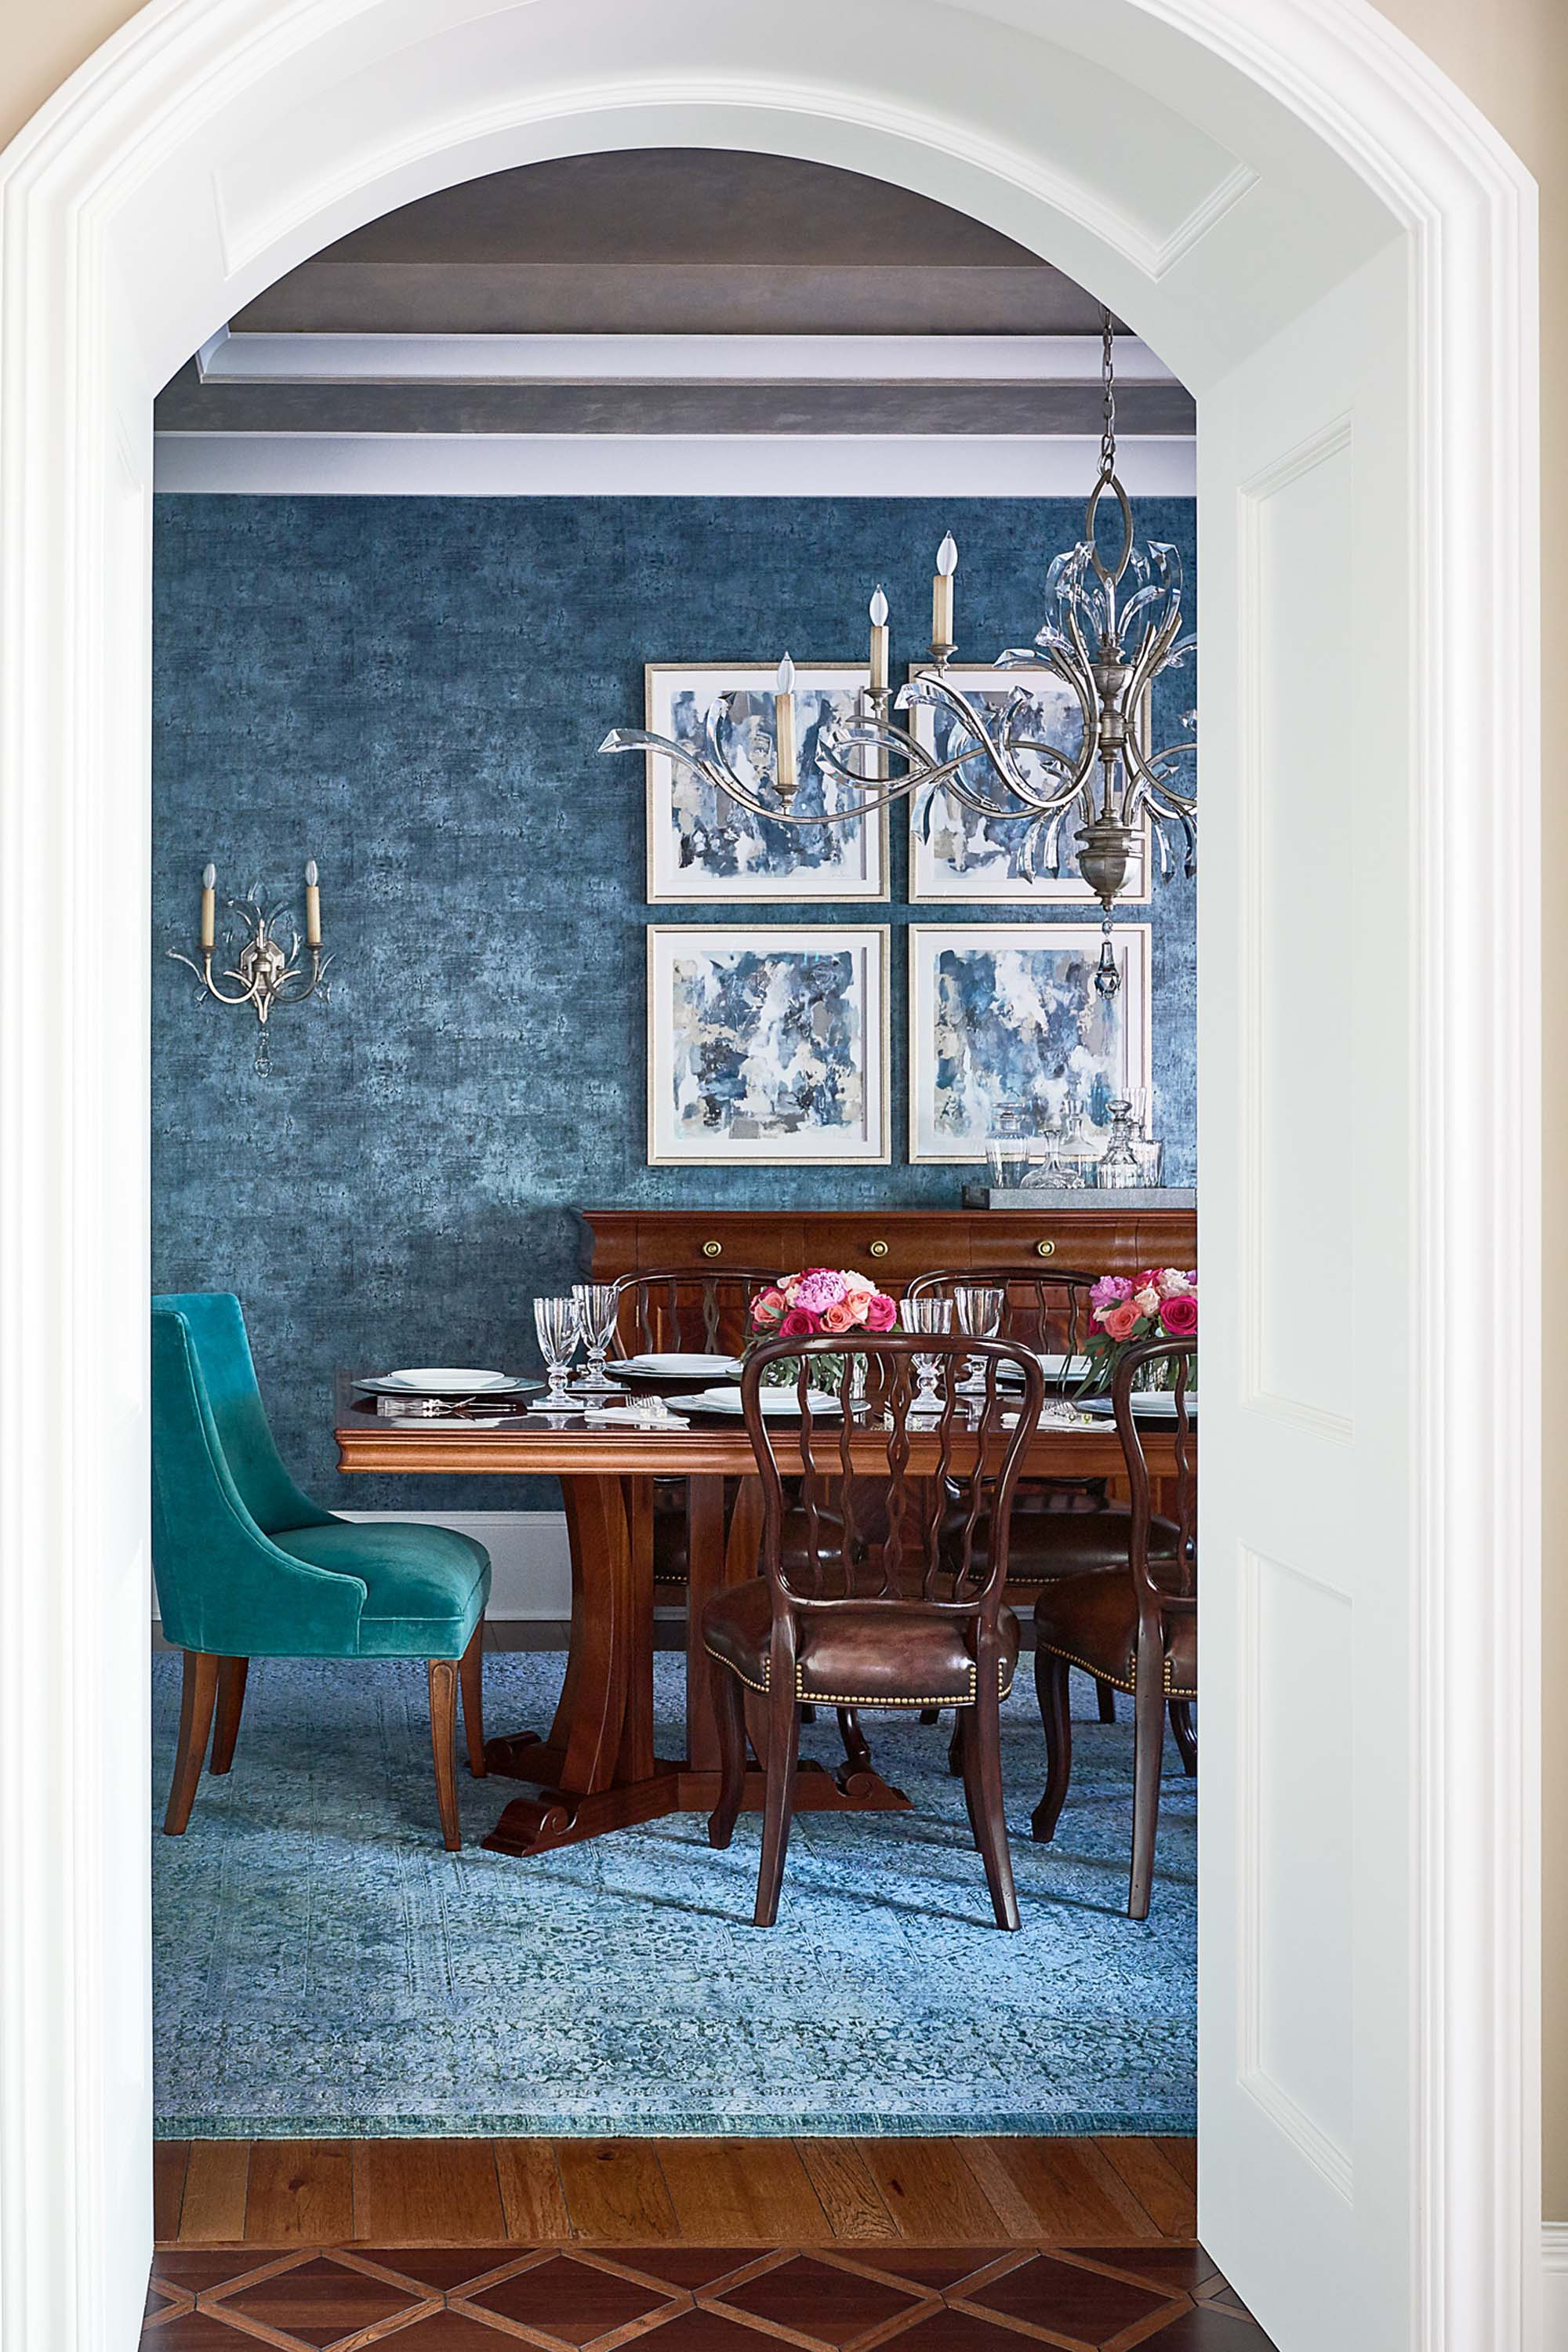 Dining room archway with inlaid hardwood flooring pattern